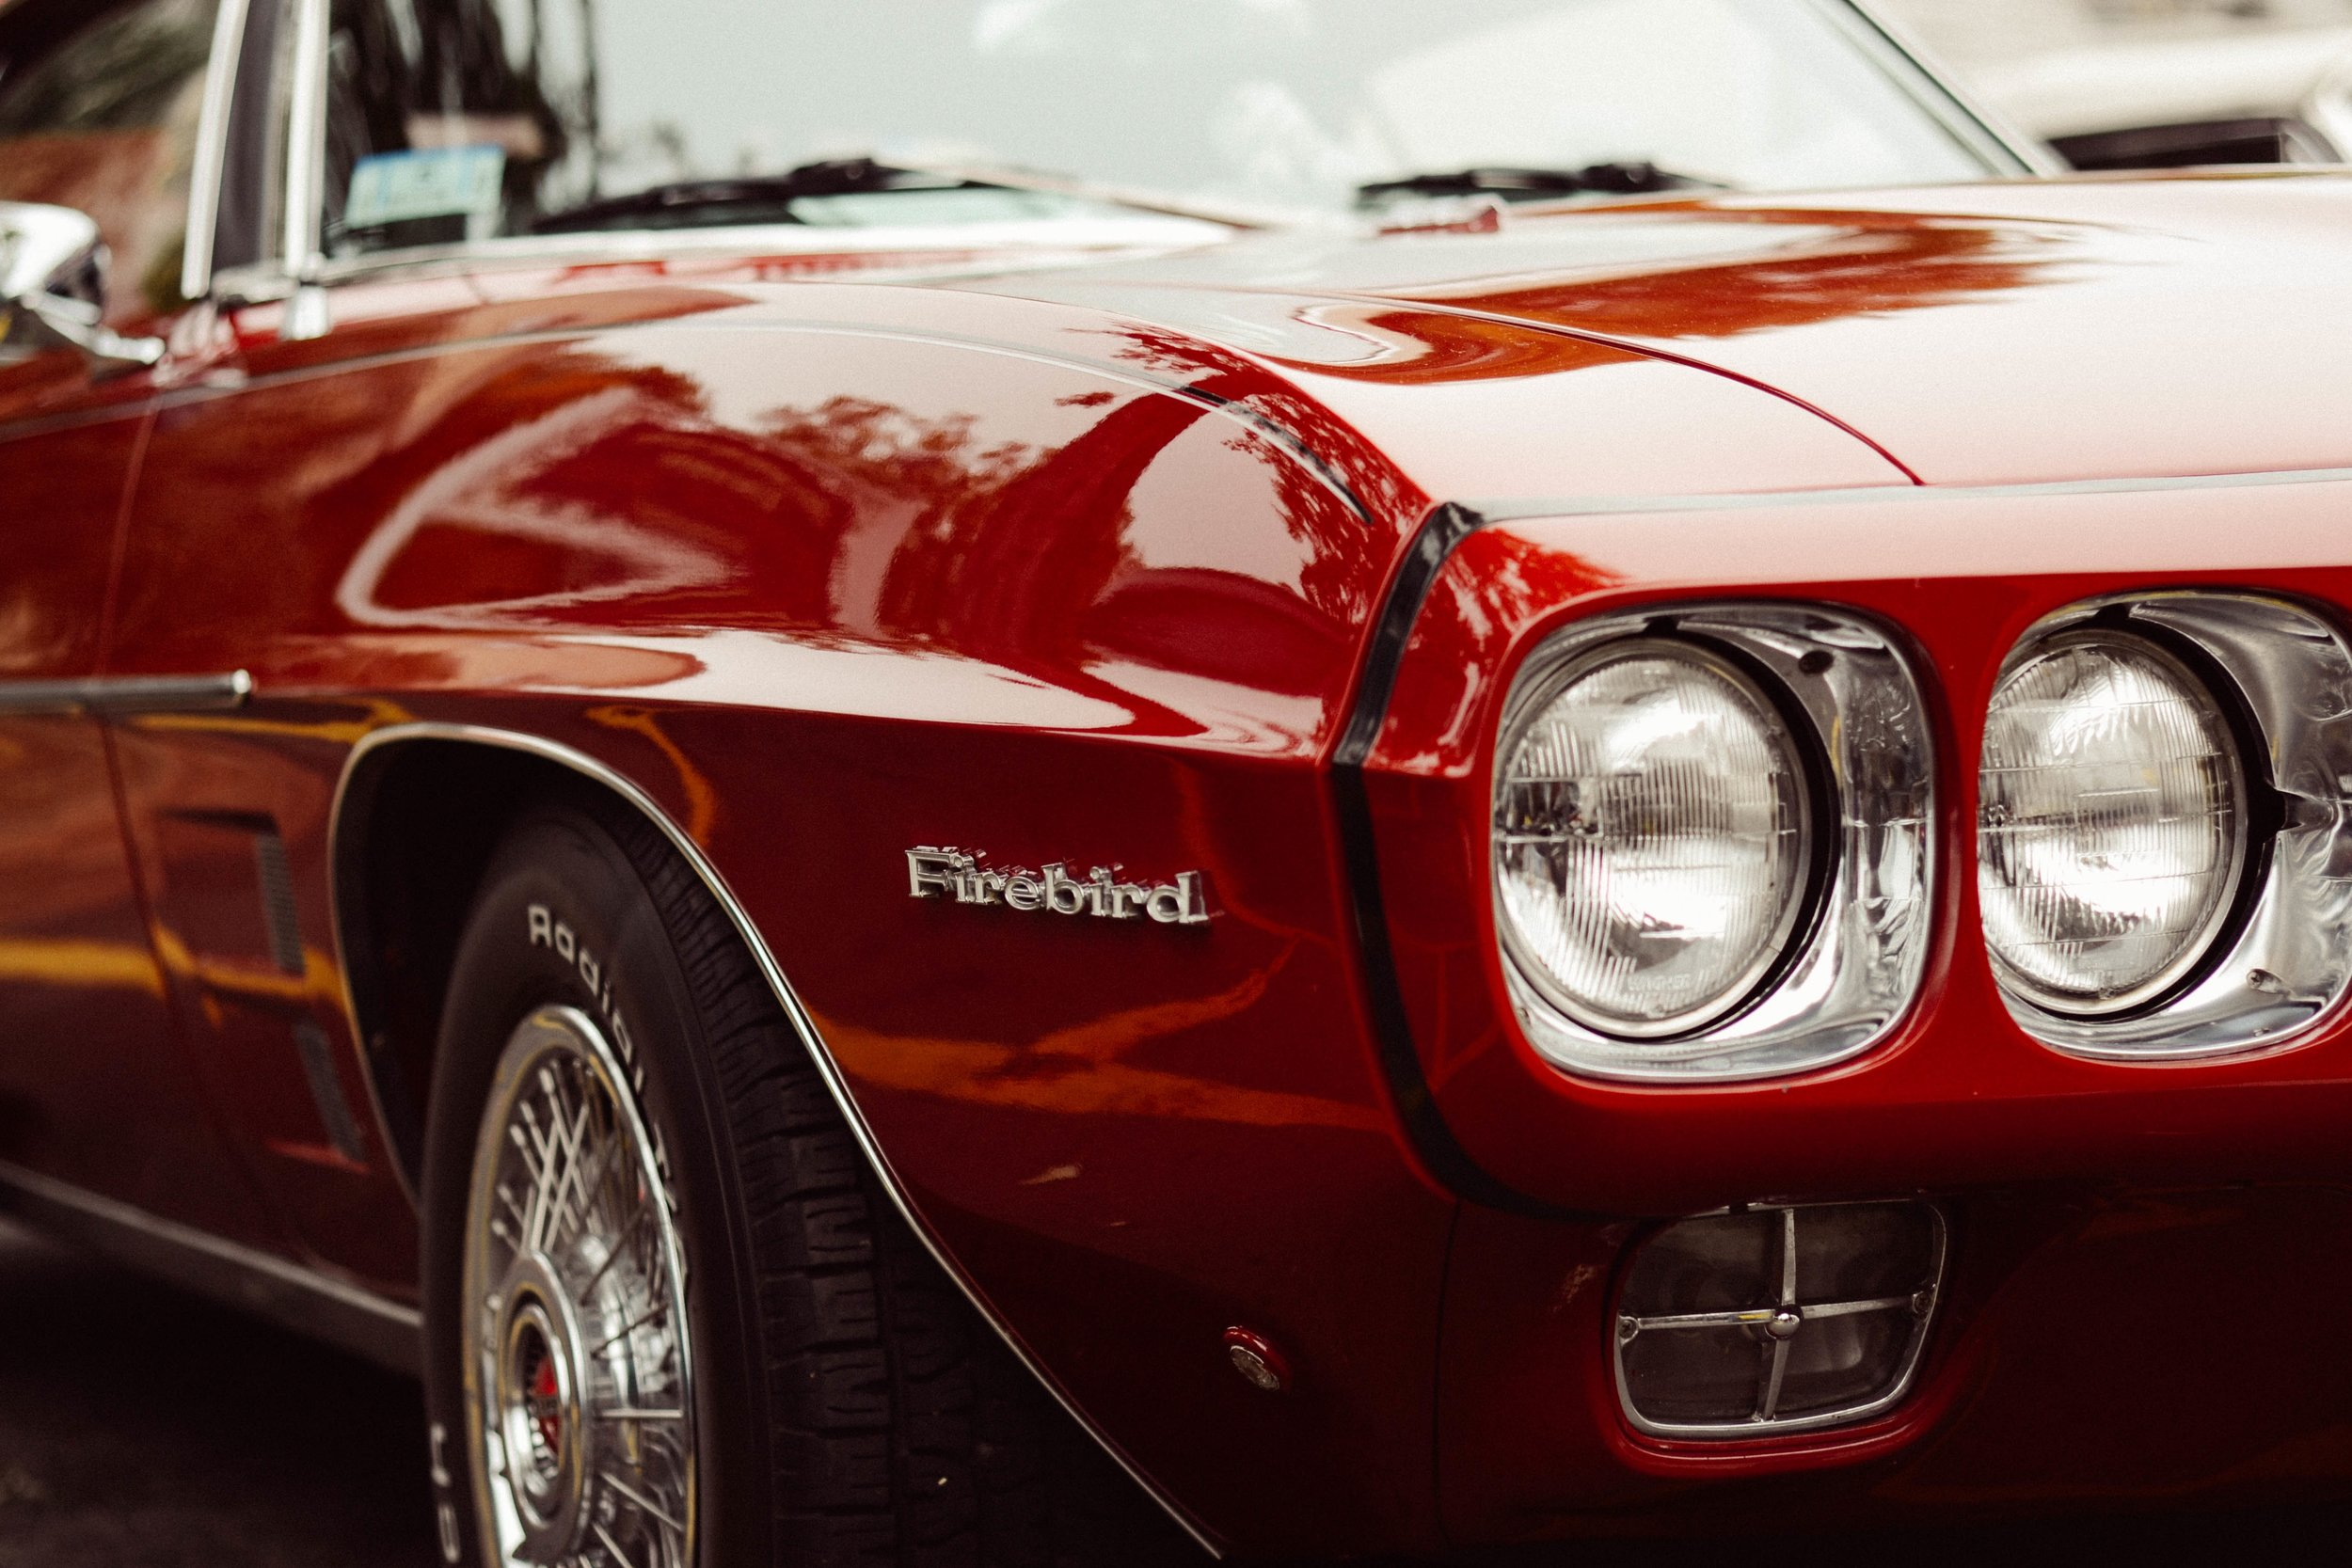 car-vintage-red-vehicle-automotive-muscle-car-19671-pxhere.com.jpg